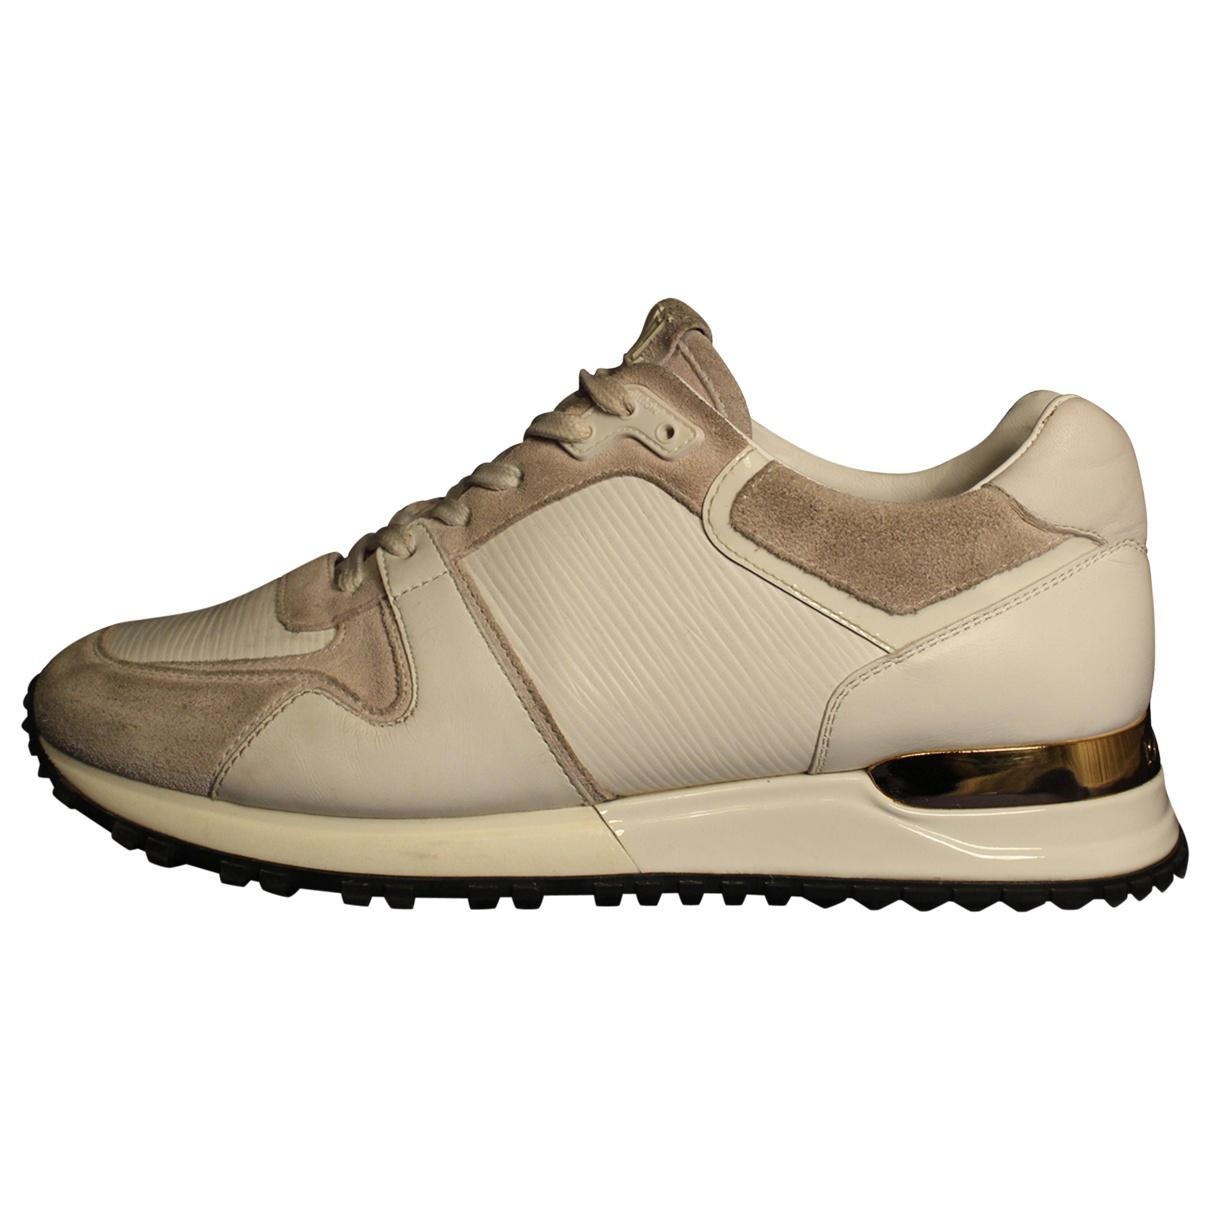 86a8fa49a58 Louis Vuitton - Natural Leather Trainers - Lyst